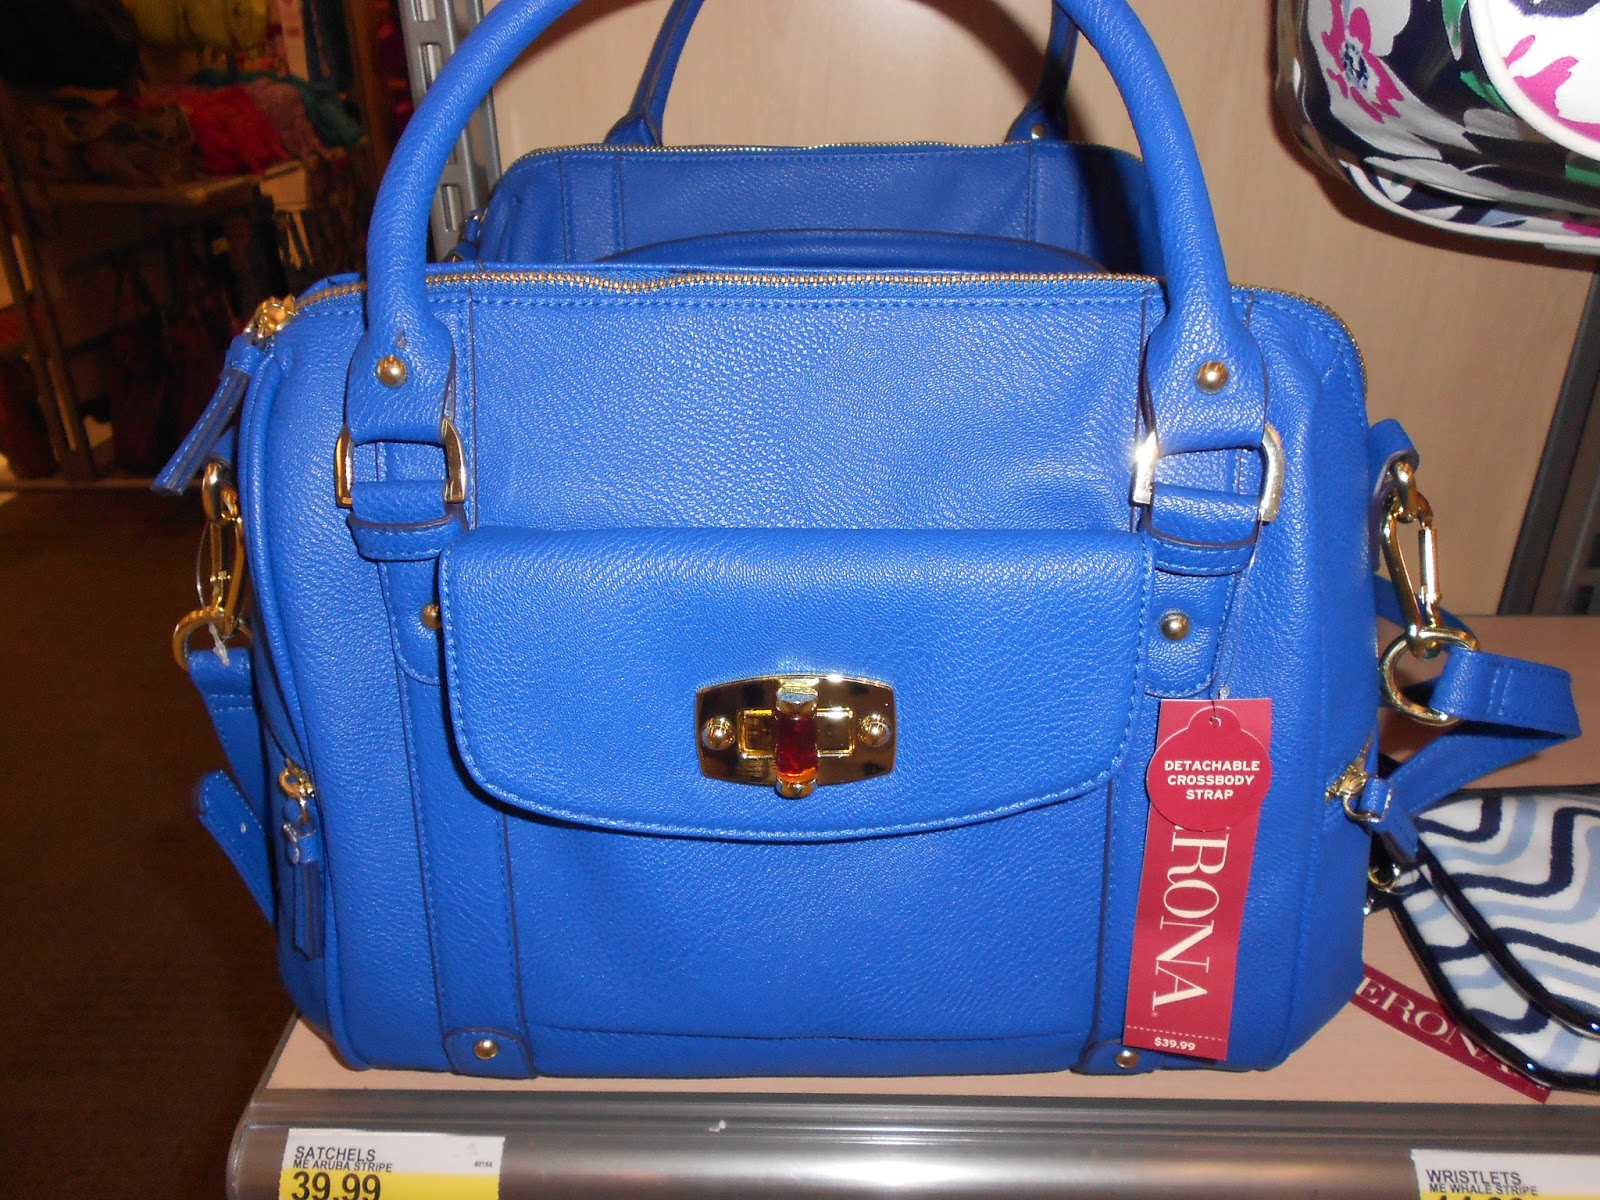 Handbag 39 99 Target Save Off 17e7e F0ee0 Also Loving The Merona Striped Wristlet Hanging Above For 16 Finest Selection 33de6 571b9